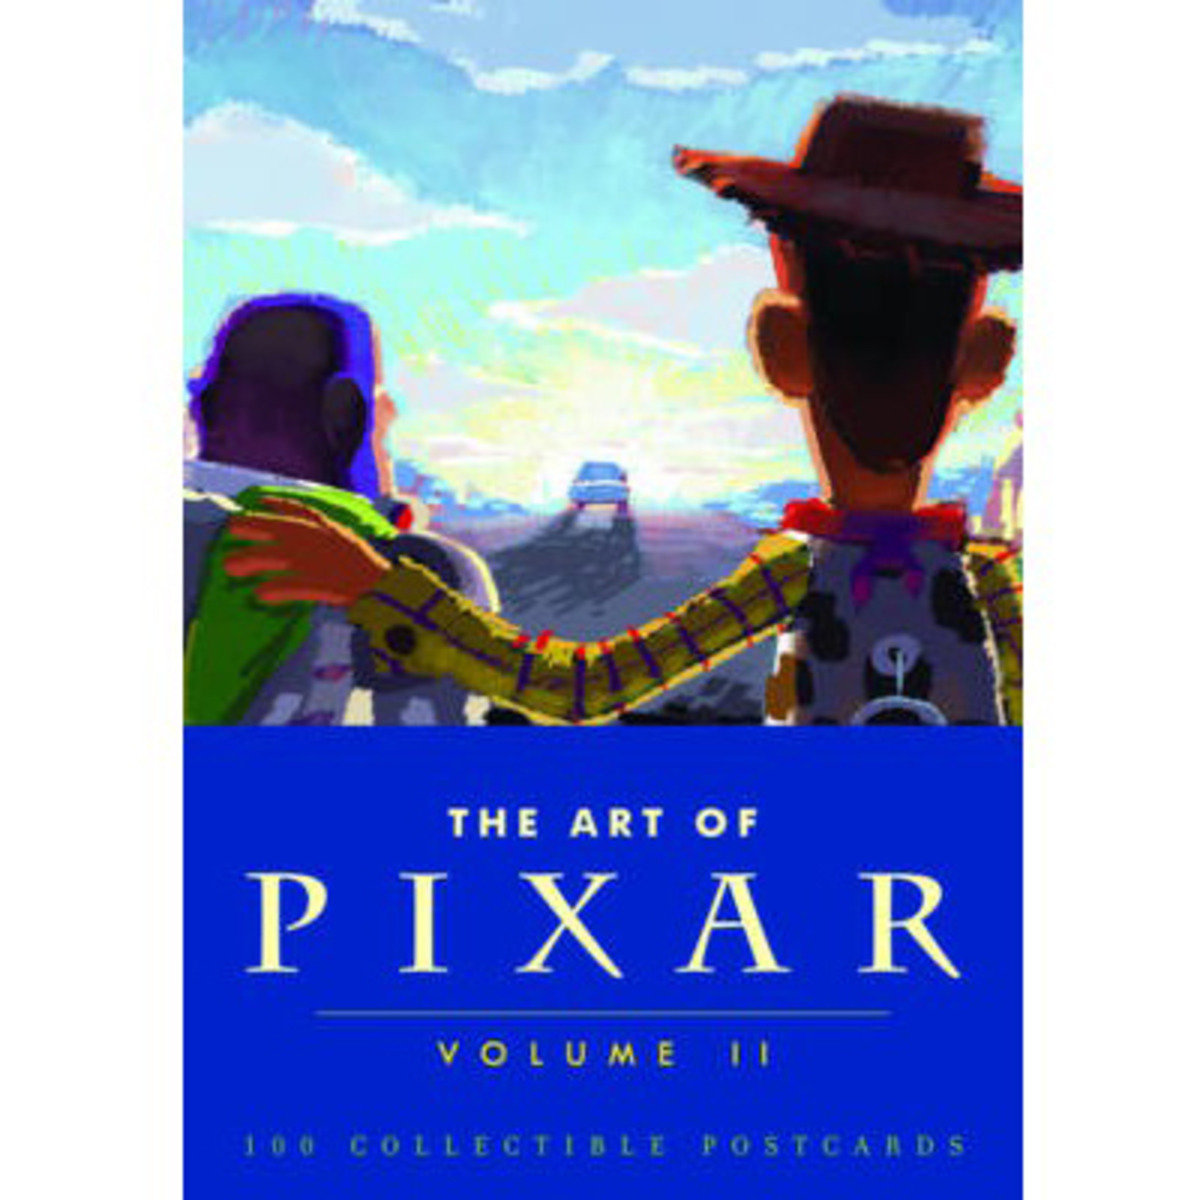 The Art of Pixar, Volume II: 100 Collectible Postcards